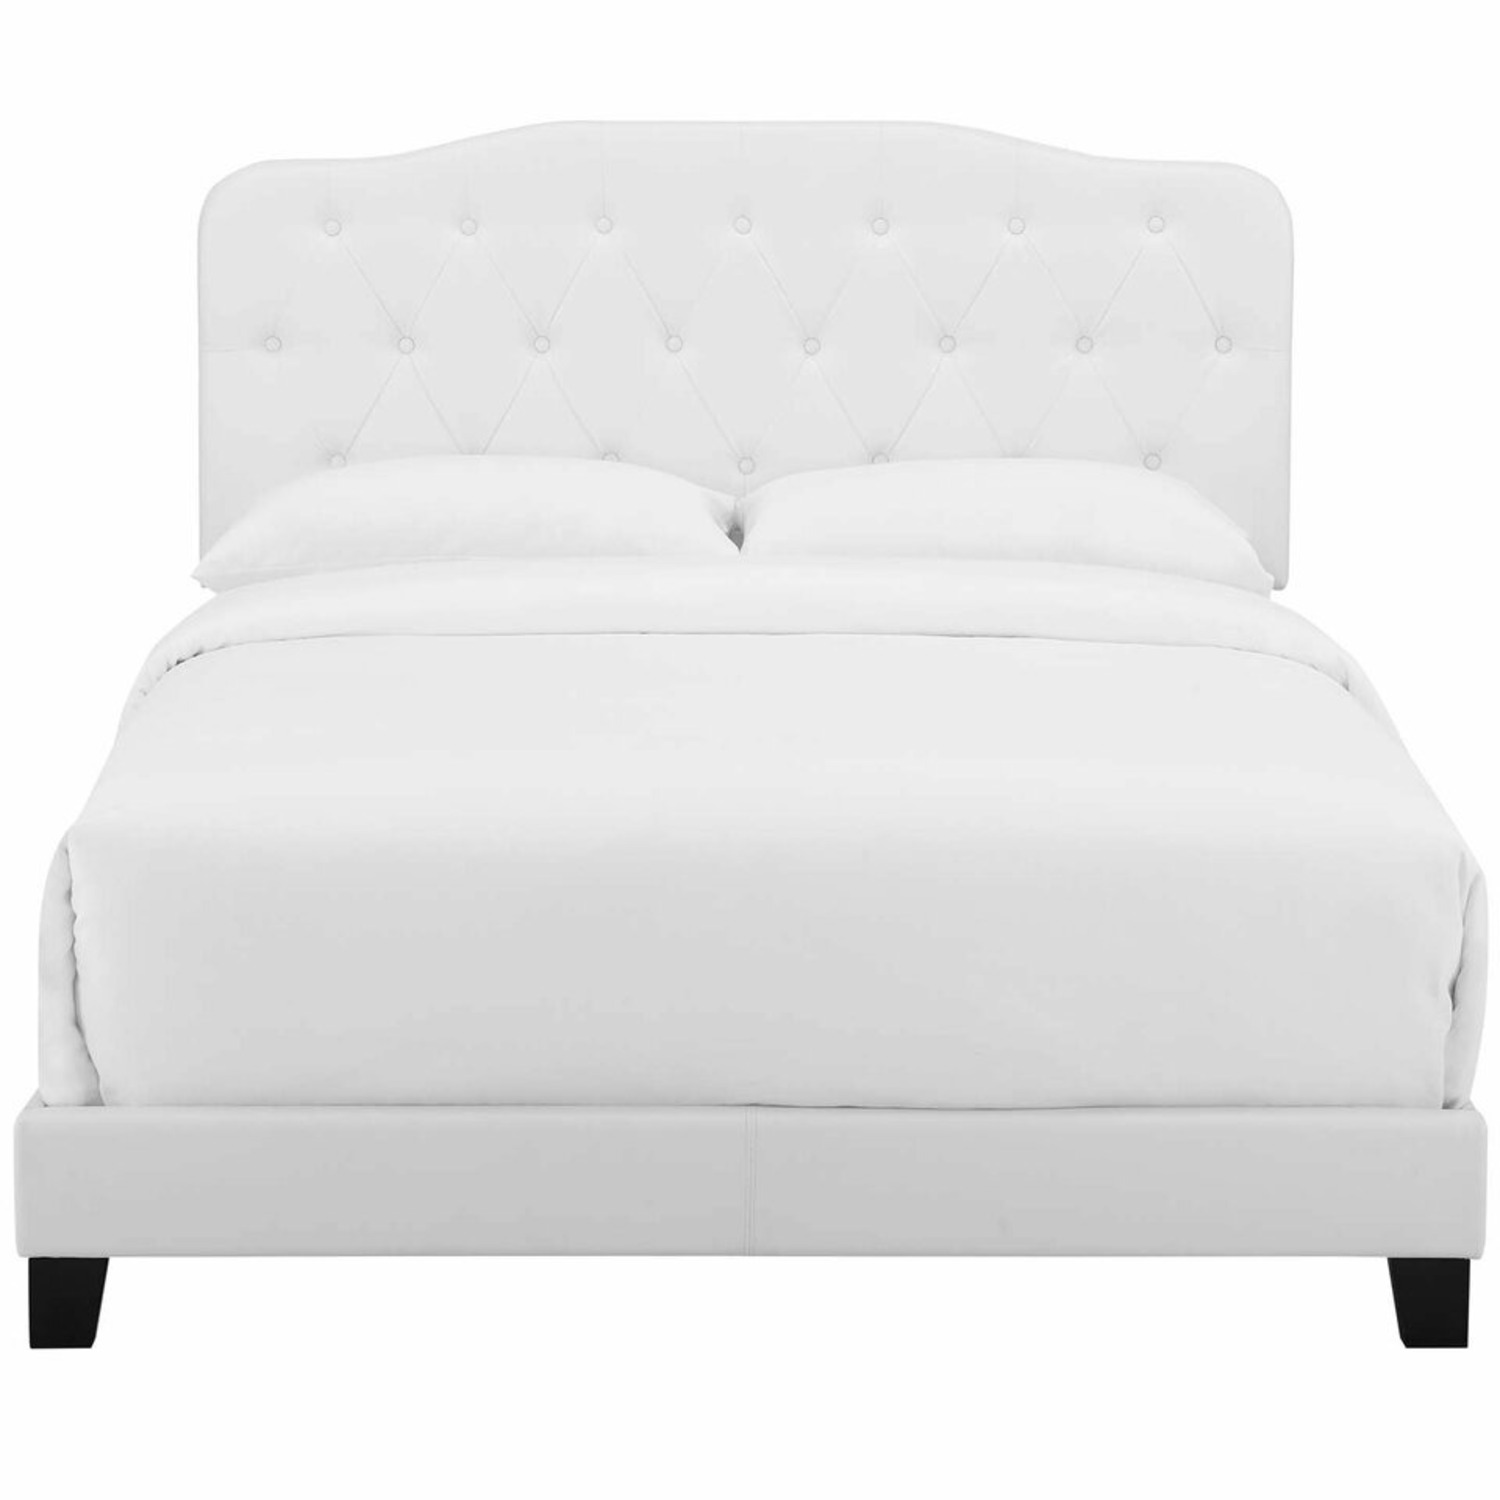 Full Bed In White Button-Tufted Faux Leather - image-3